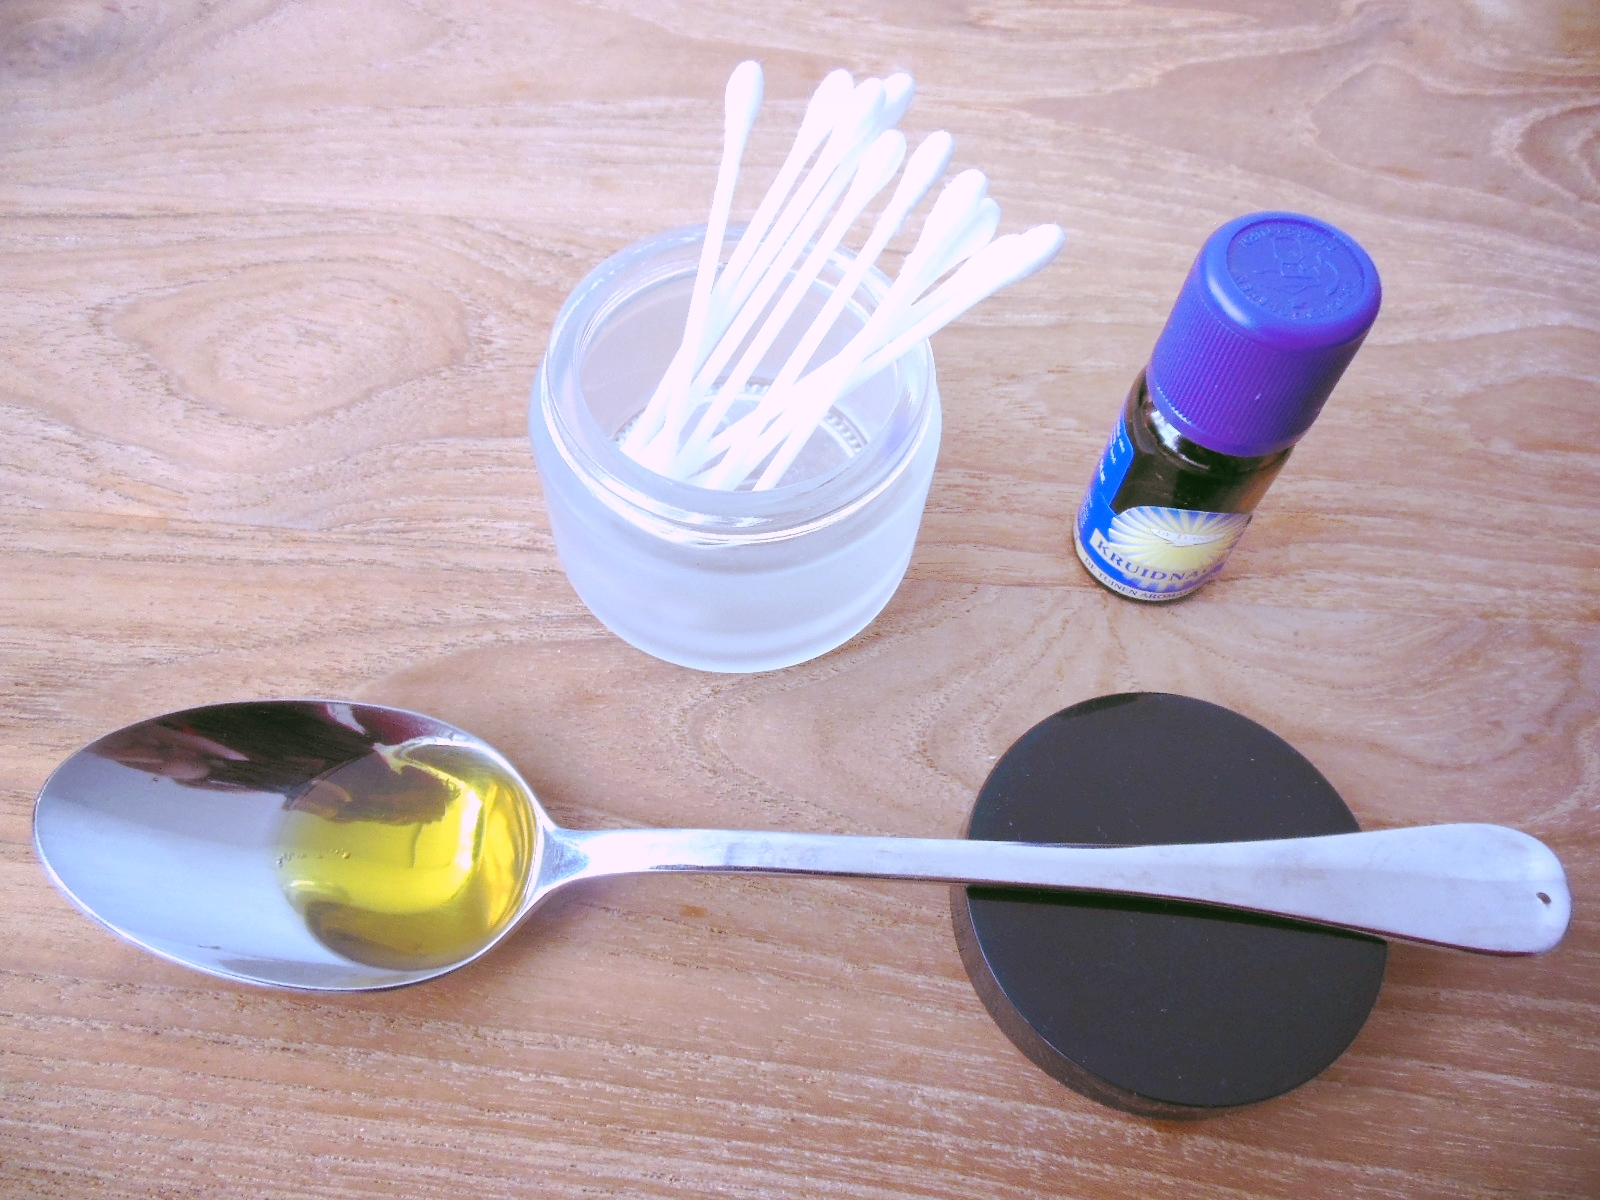 How to dilute clove oil with olive oil and use it to temporary relieve a toothache